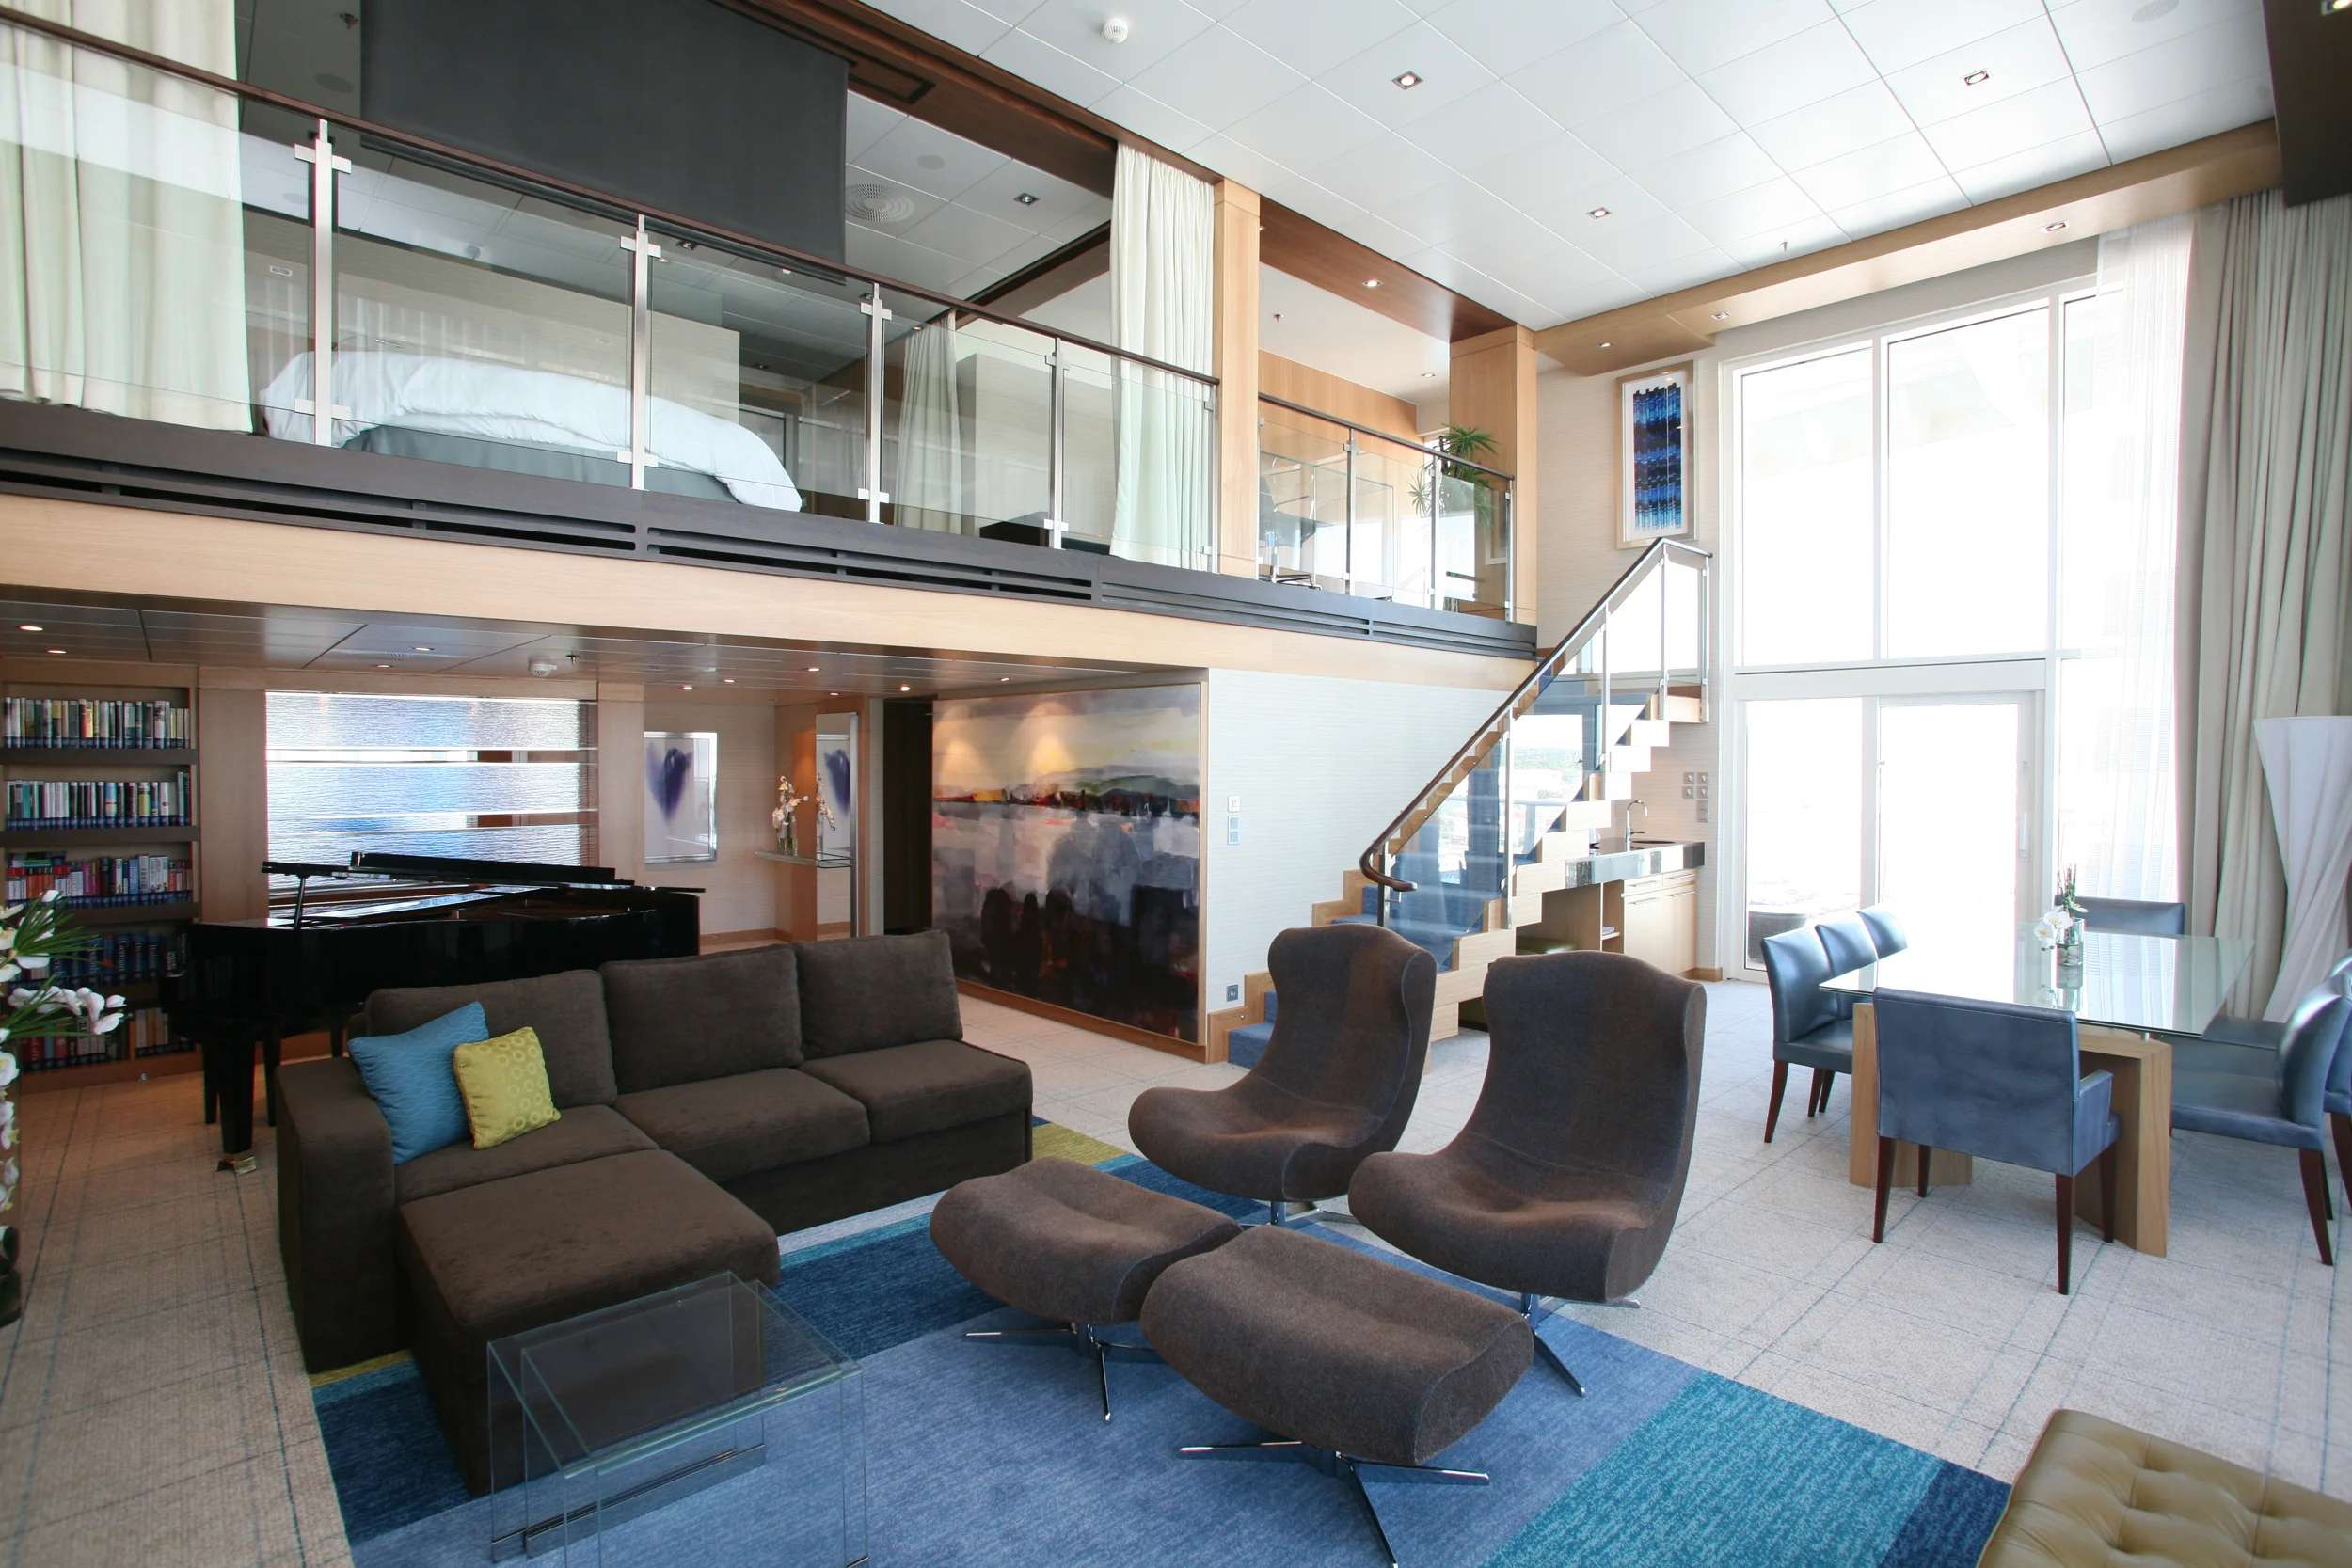 A Royal Loft Suite on Royal Caribbean's Oasis of the Seas. (Photo courtesy of Royal Caribbean)